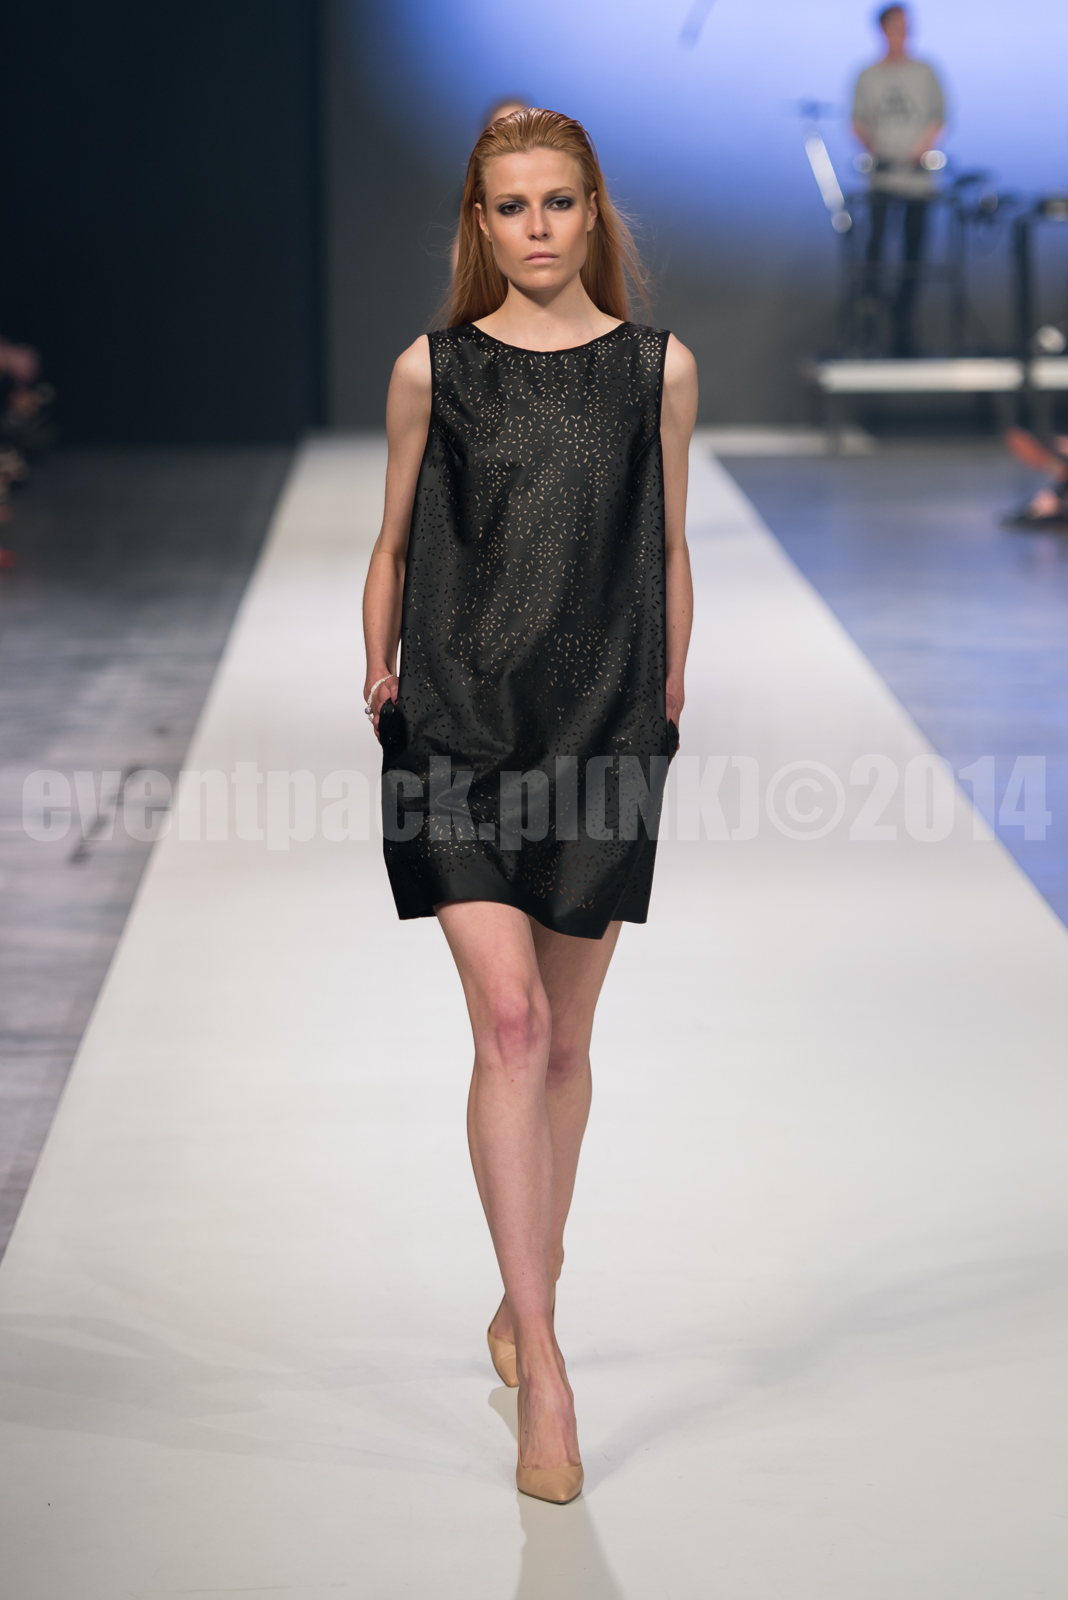 Natalia jaroszewska fashionphilosophy fashion week poland fall winter